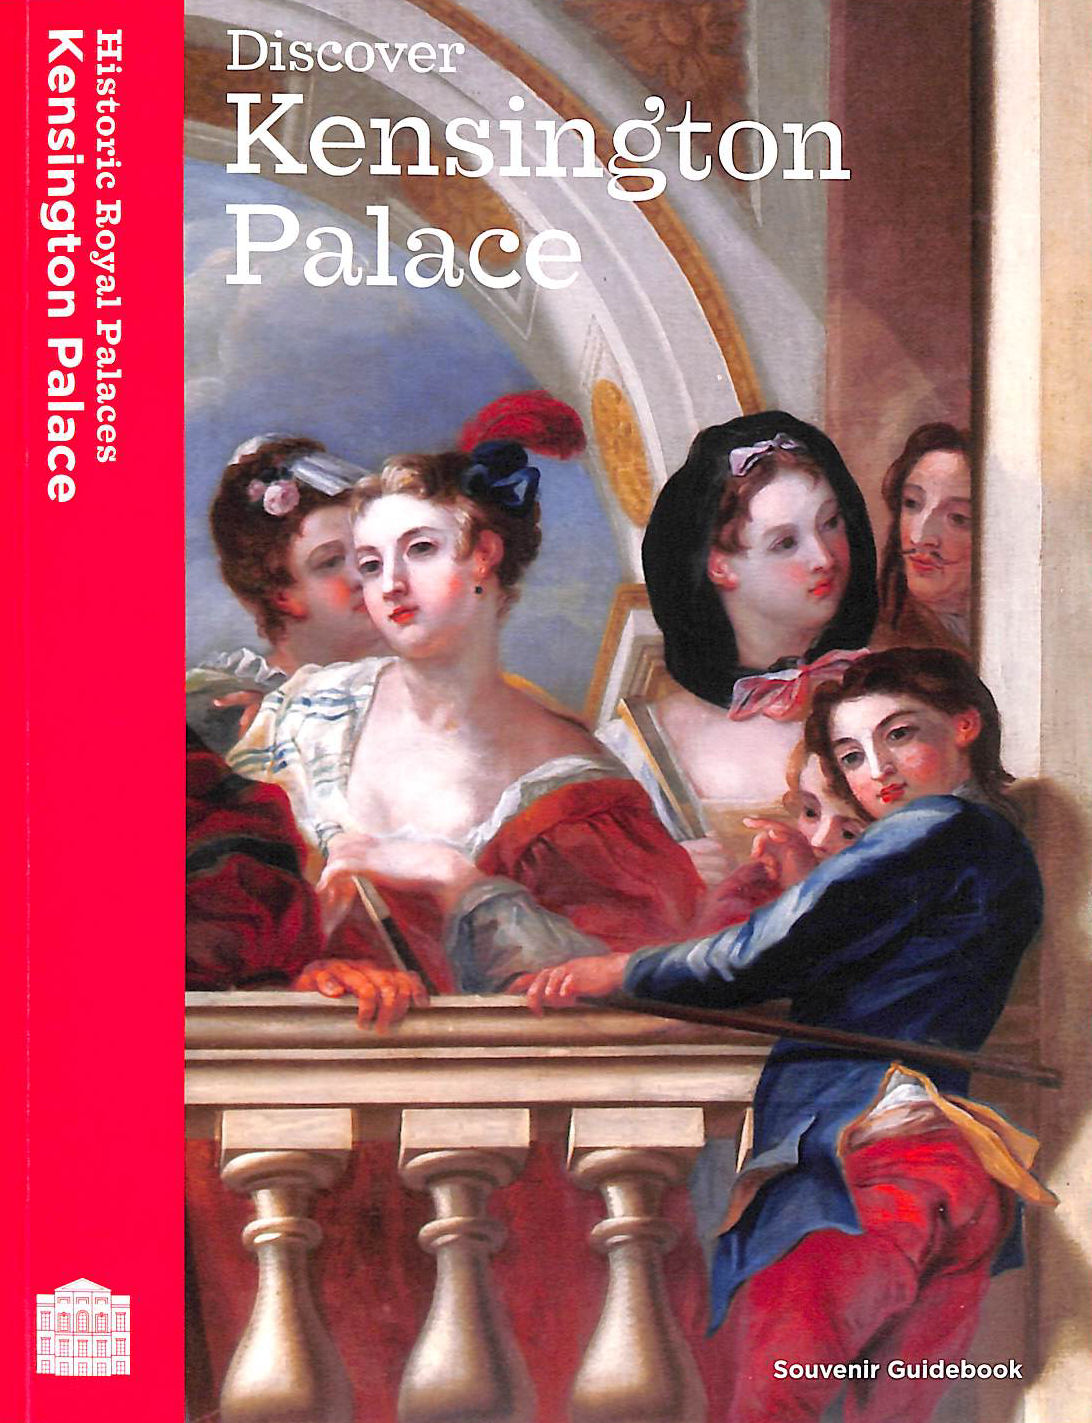 Image for Discover Kensington Palace: Souvenir Guidebook